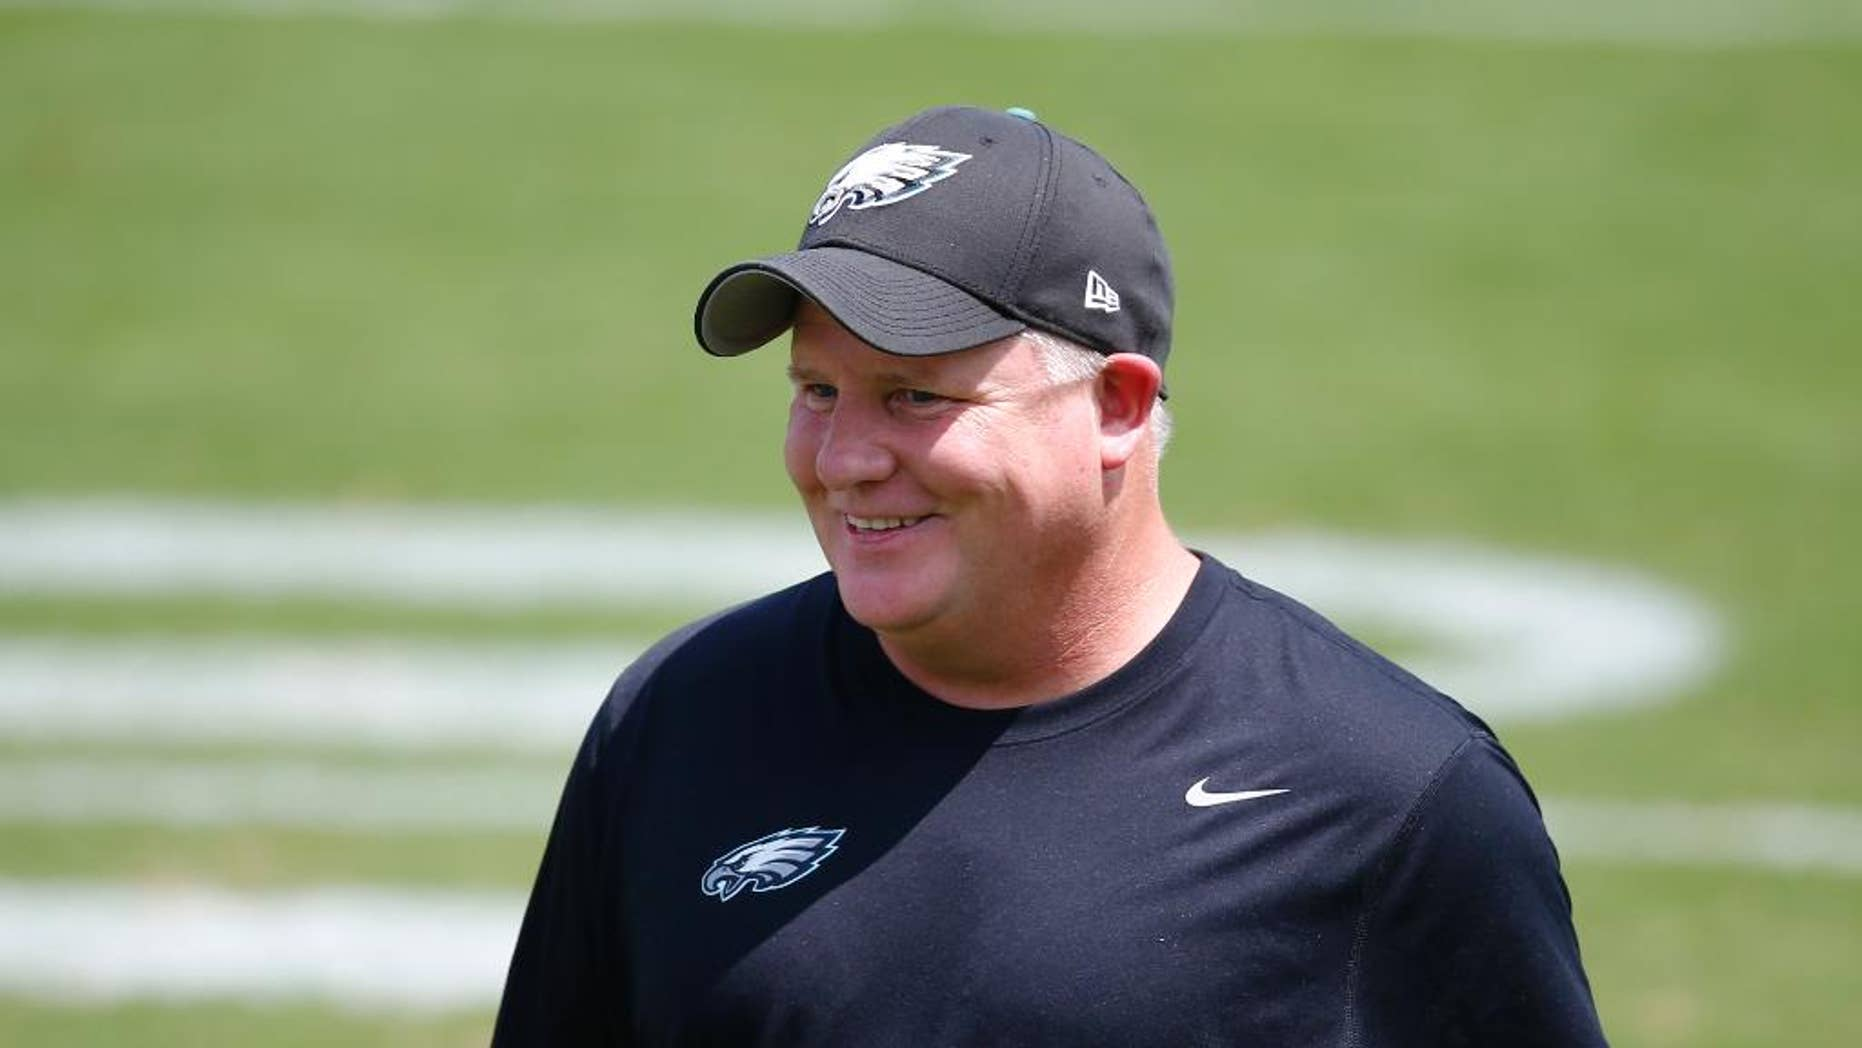 Philadelphia Eagles head coach Chip Kelly walks off the field during NFL football training camp Monday, Aug. 4, 2014, in Philadelphia. (AP Photo/Matt Rourke)